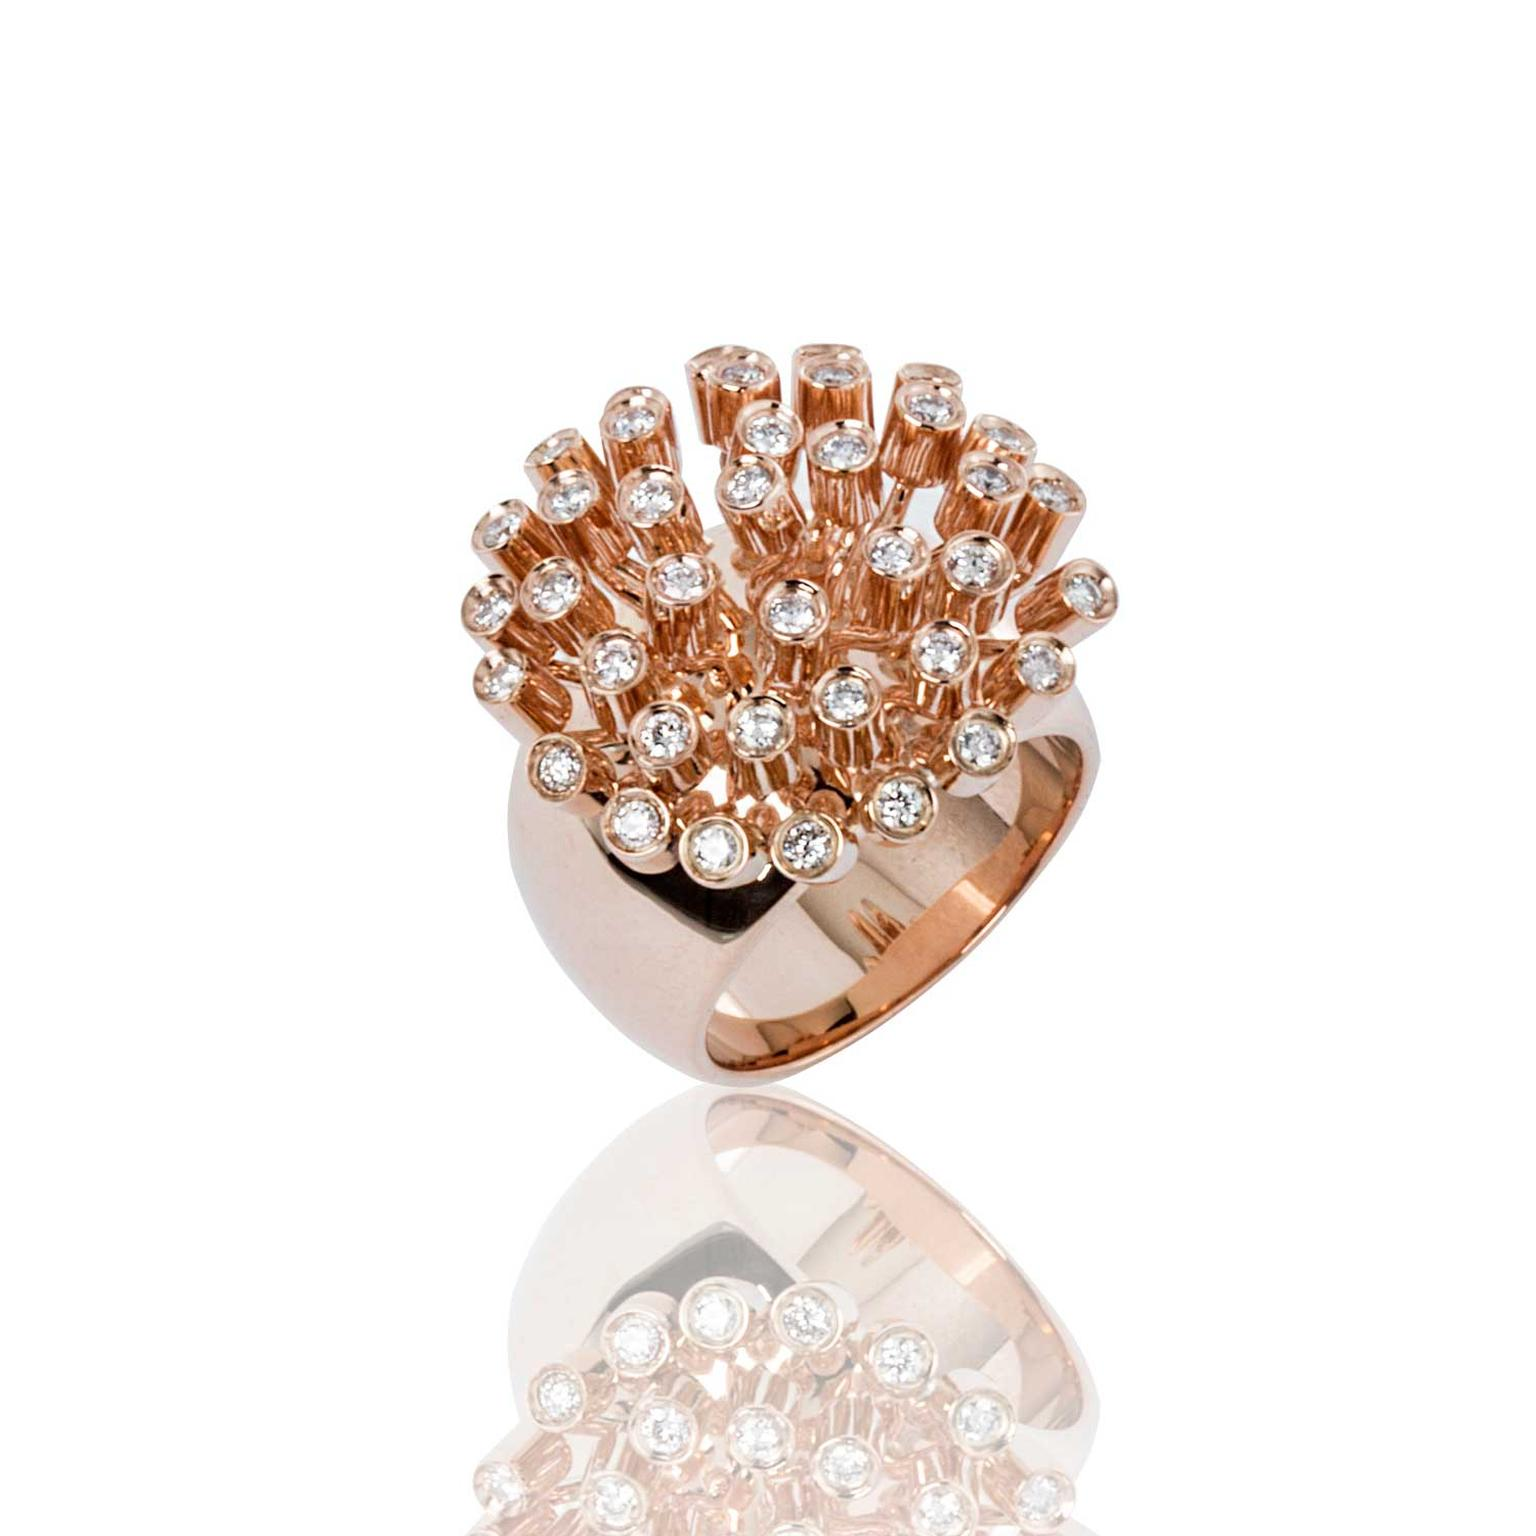 Carla Amorim Dandelion ring in pink gold with diamonds